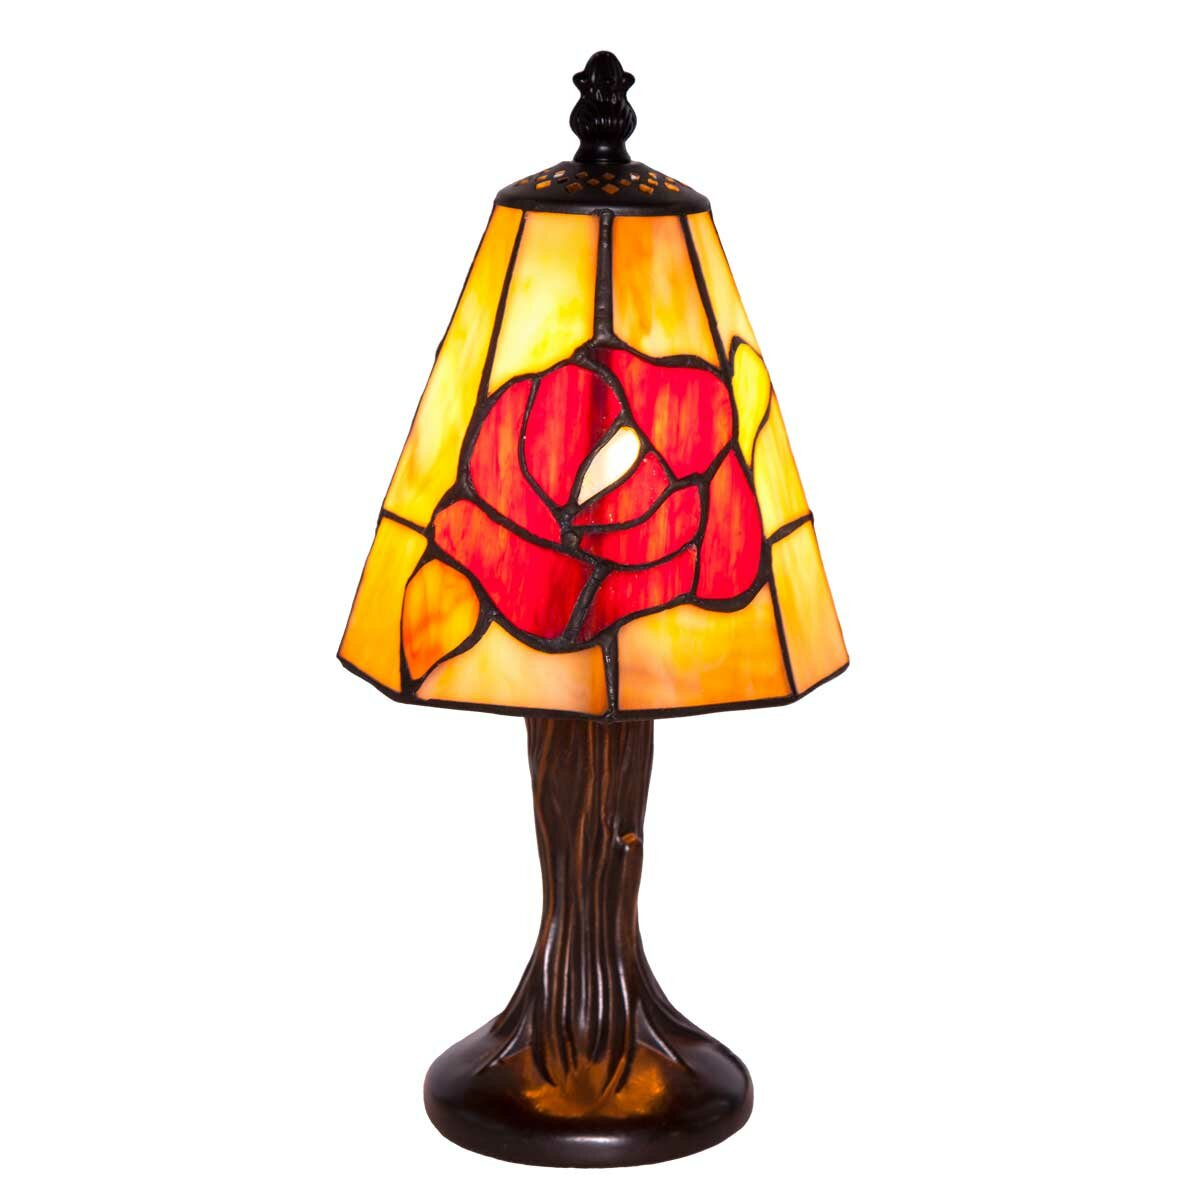 rose tiffany style stained glass 11 h table lamp reviews wa. Black Bedroom Furniture Sets. Home Design Ideas